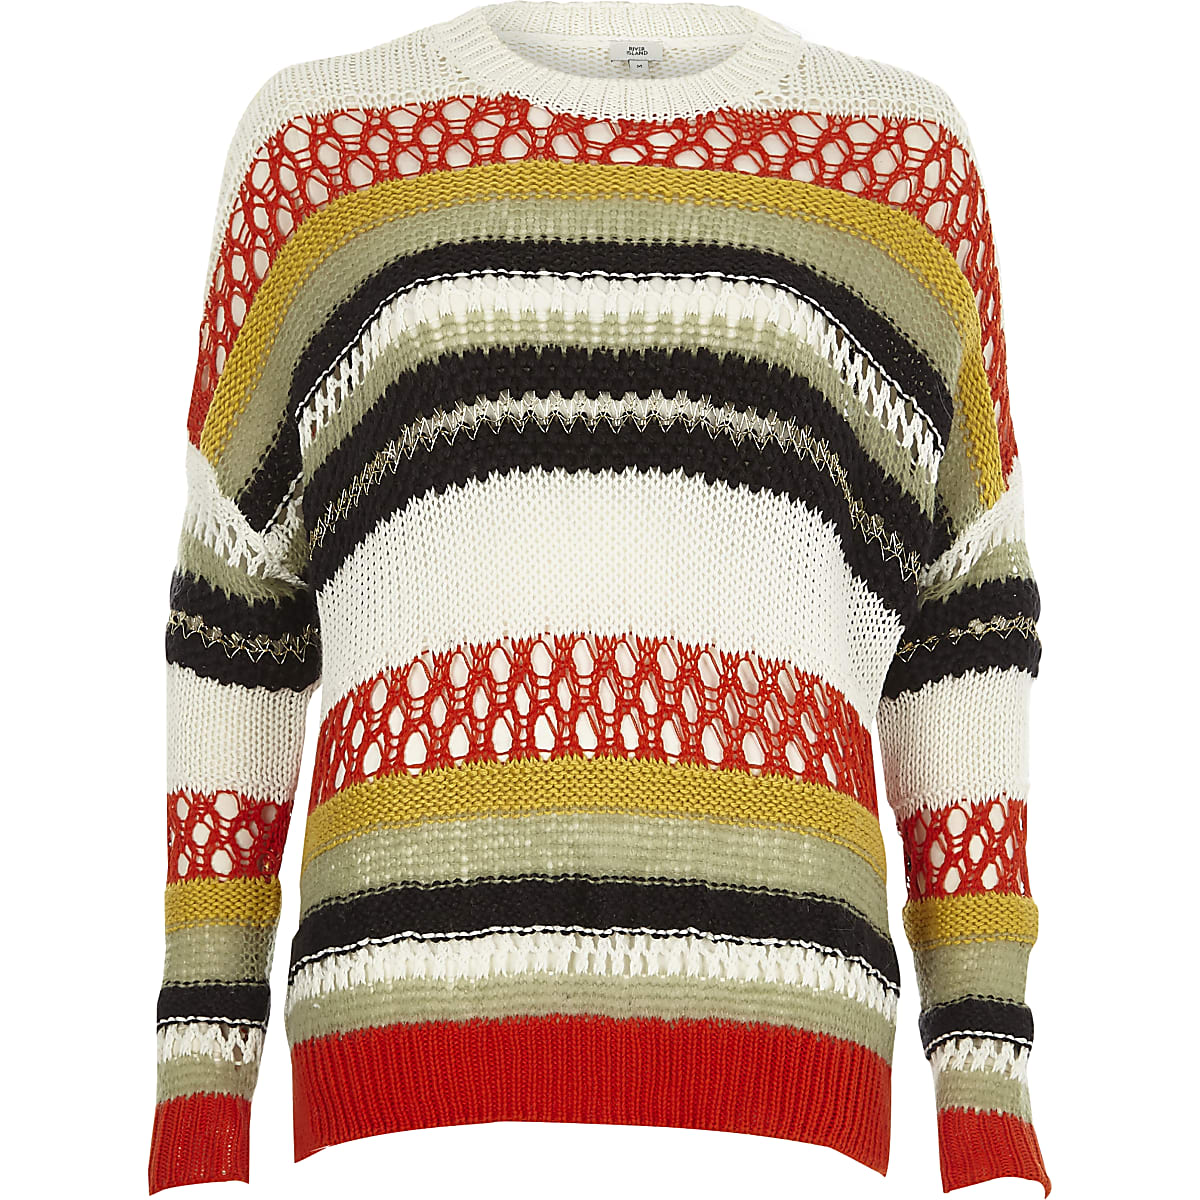 Orange multi color stripe mixed knit sweater